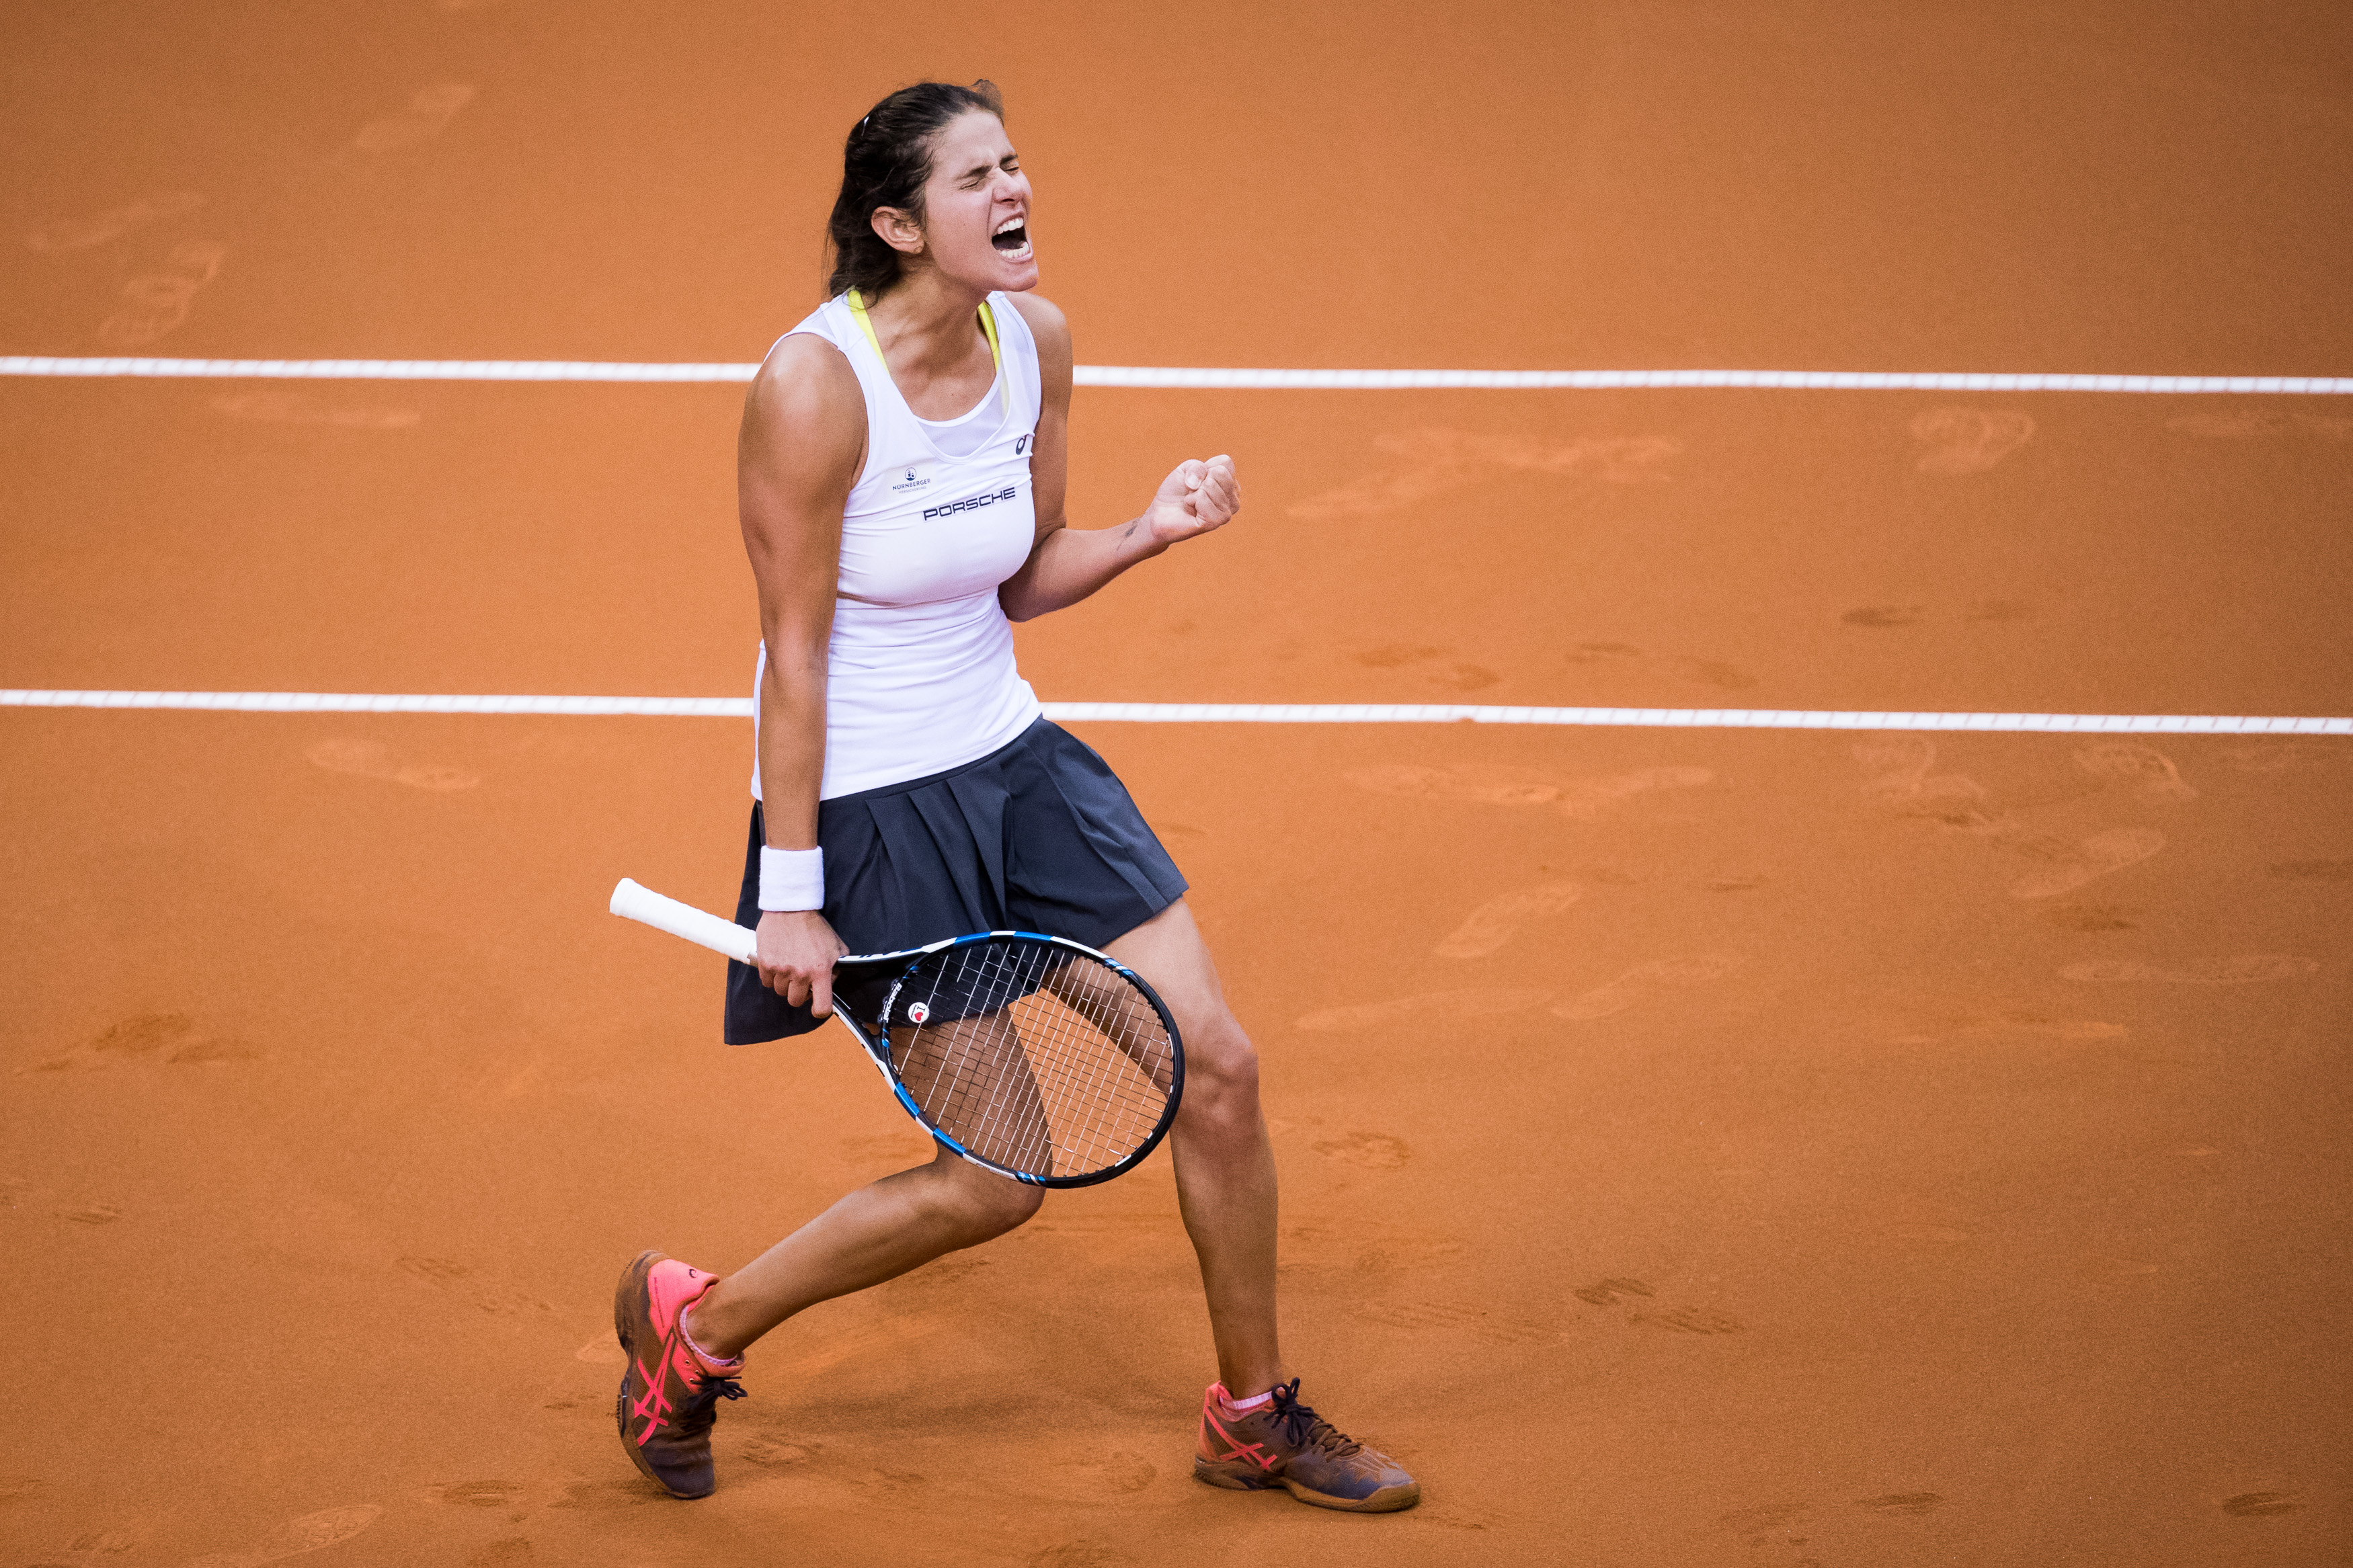 STUTTGART, GERMANY - APRIL 23: Julia Goerges of Germany celebrates victory against Lesia Tsurenko of Ukraine during the FedCup World Group Play-Off match between Germany and Ukraine at Porsche Arena on April 23, 2017 in Stuttgart, Germany. (Photo by Simon Hofmann/Bongarts/Getty Images)